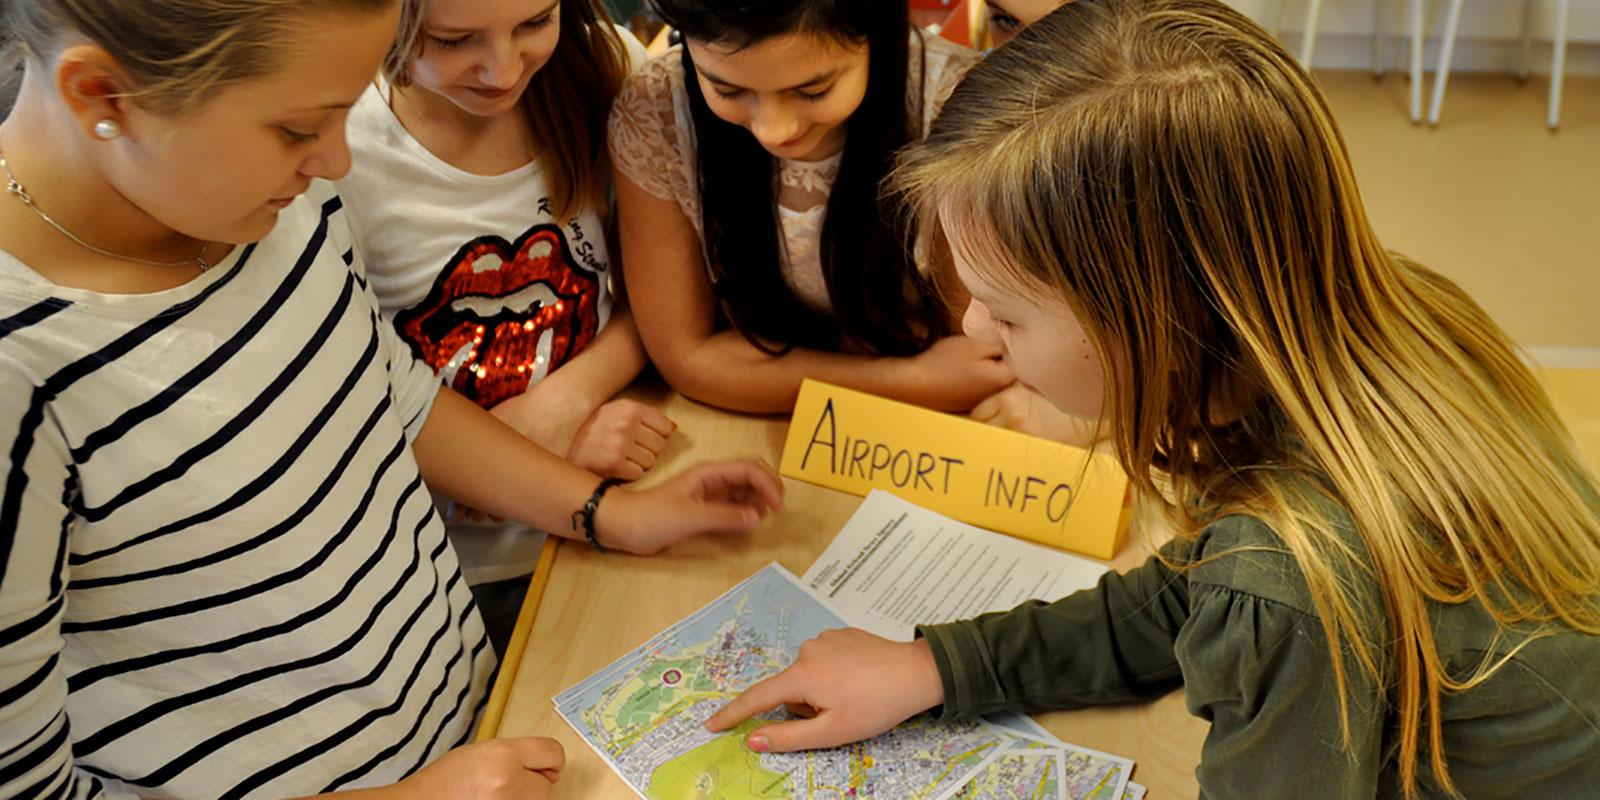 Group of girls looking at a map